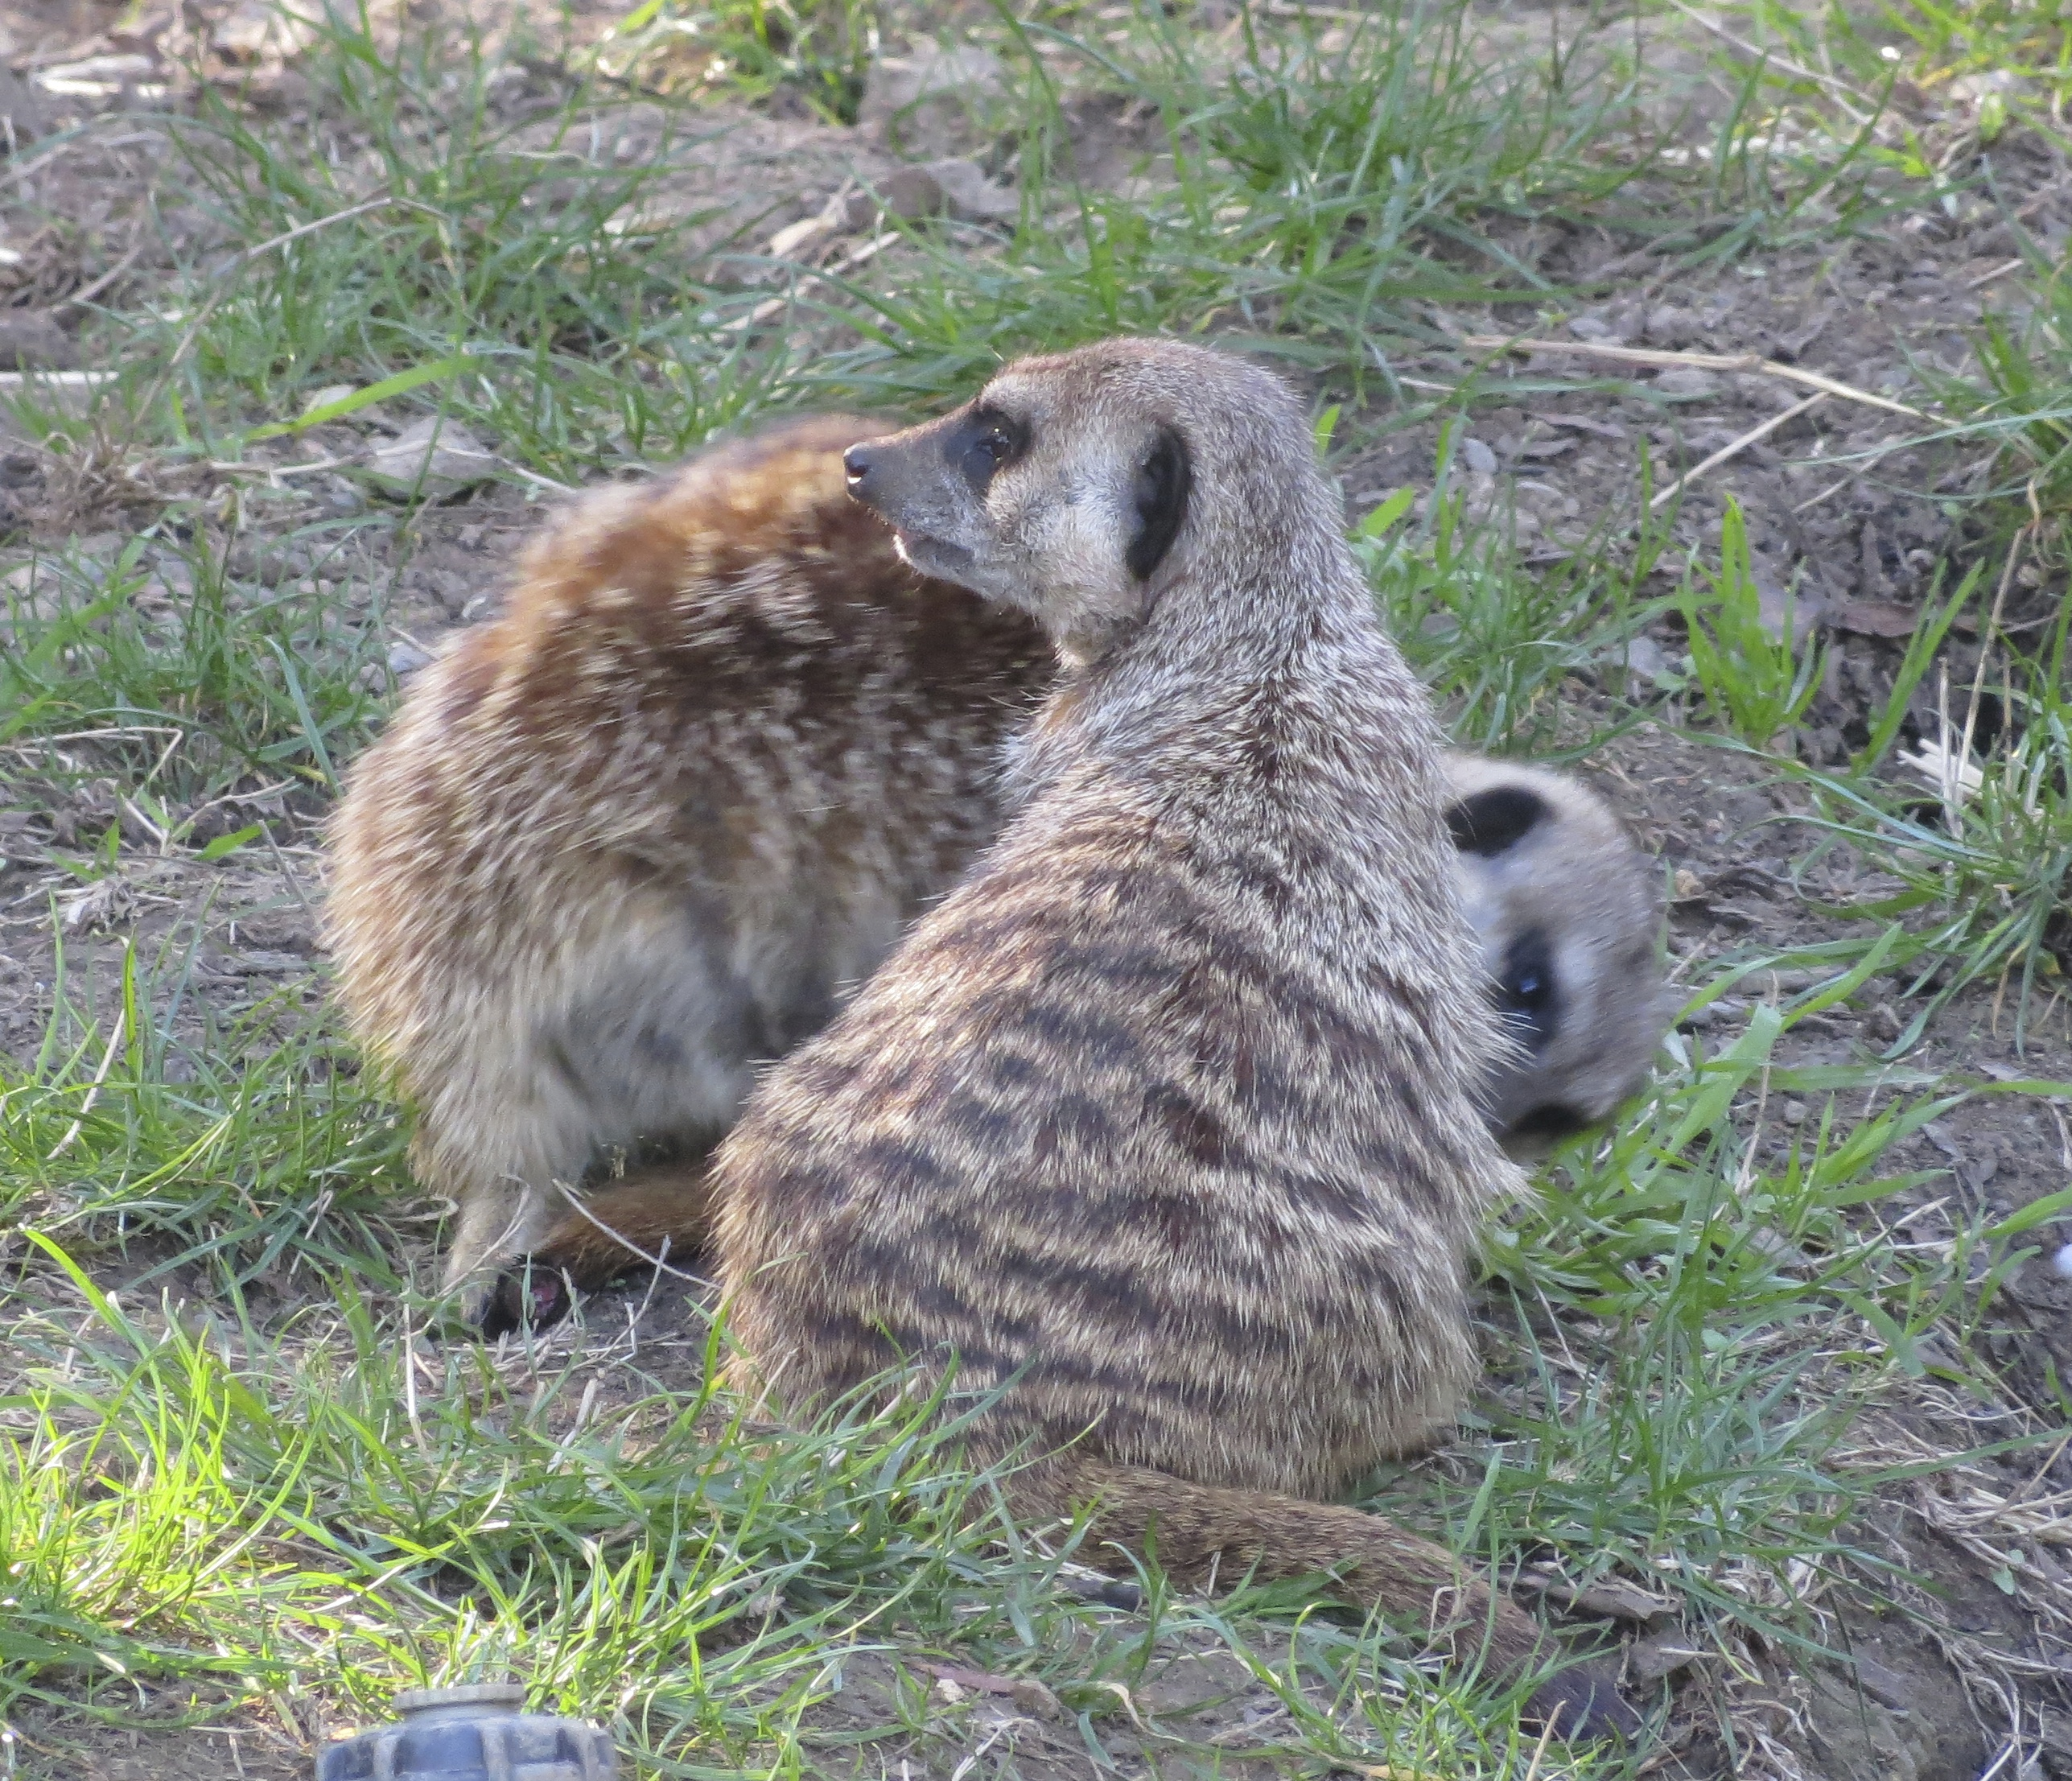 Two Meerkats, One Listening To The Ground